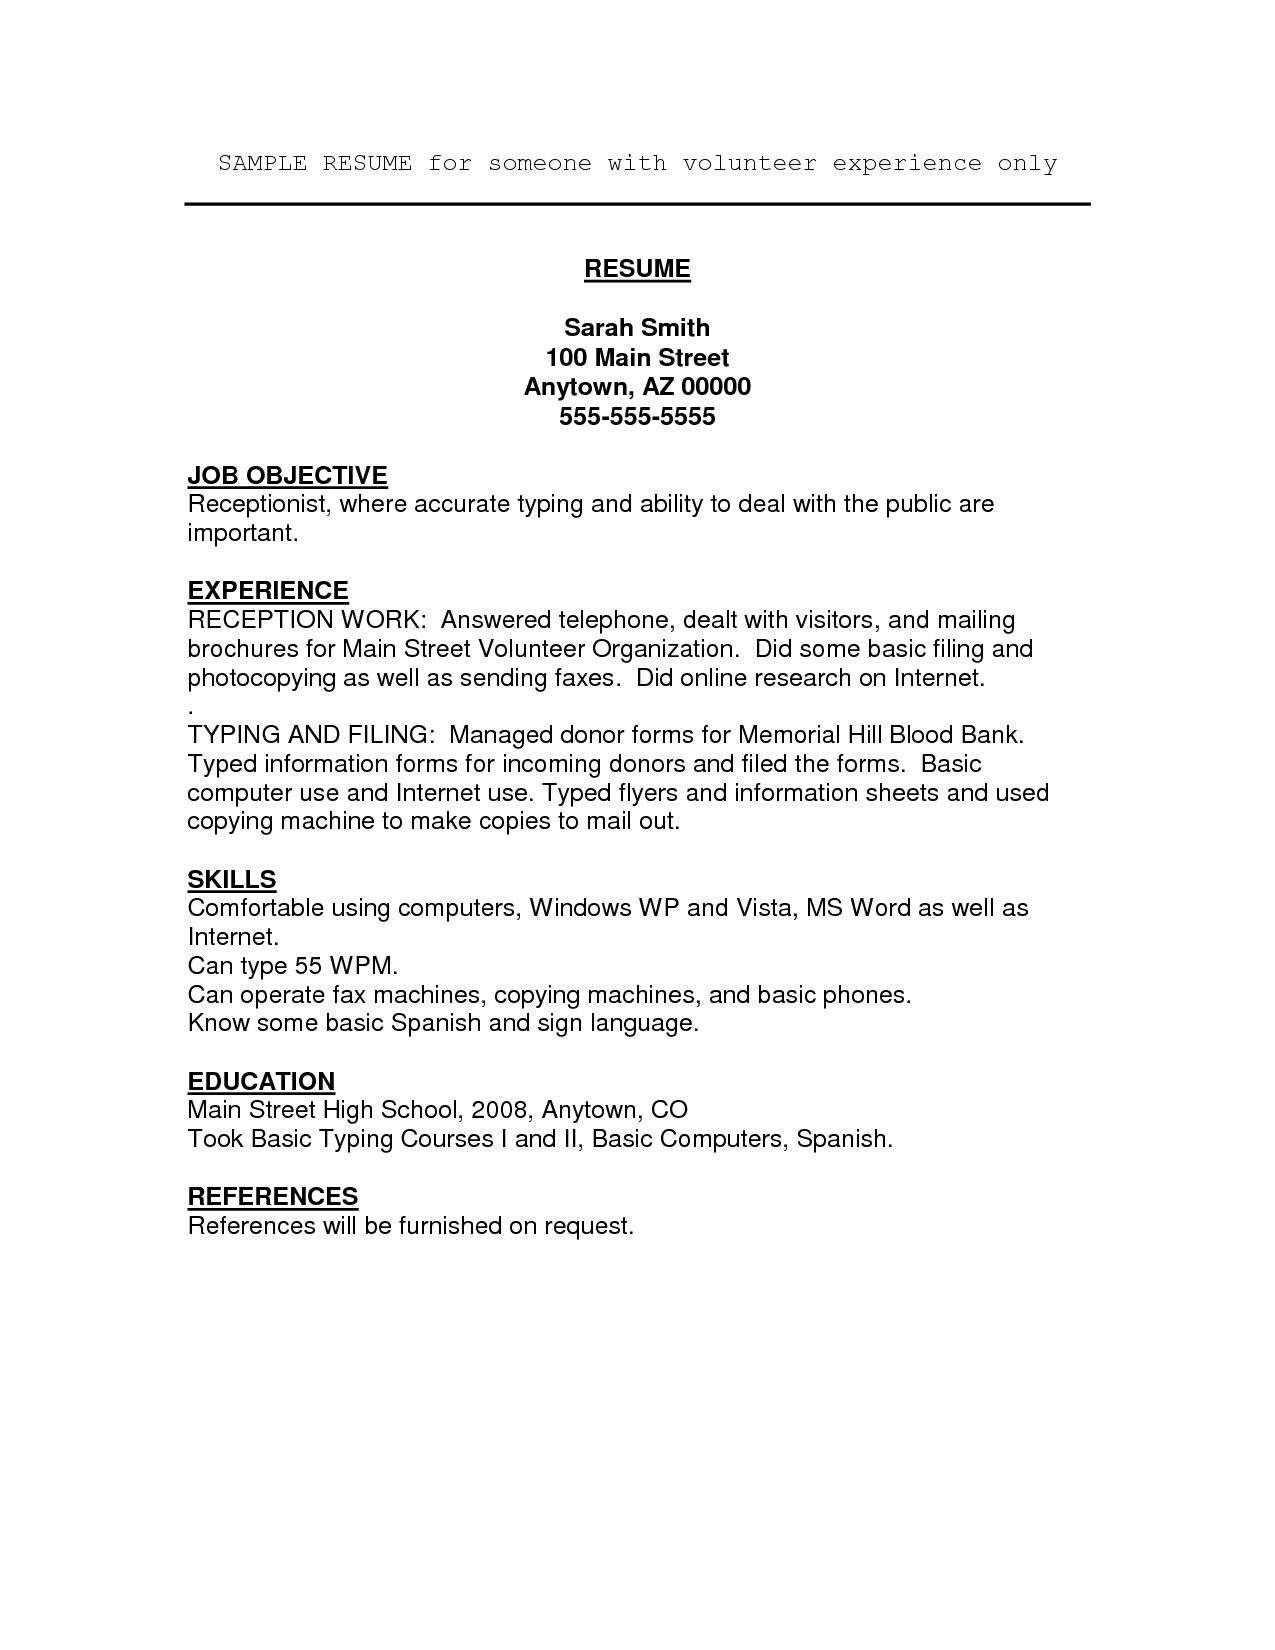 How To Write An Objective For Resume Job Resume Volunteer Experience  Httpwwwresumecareerjob